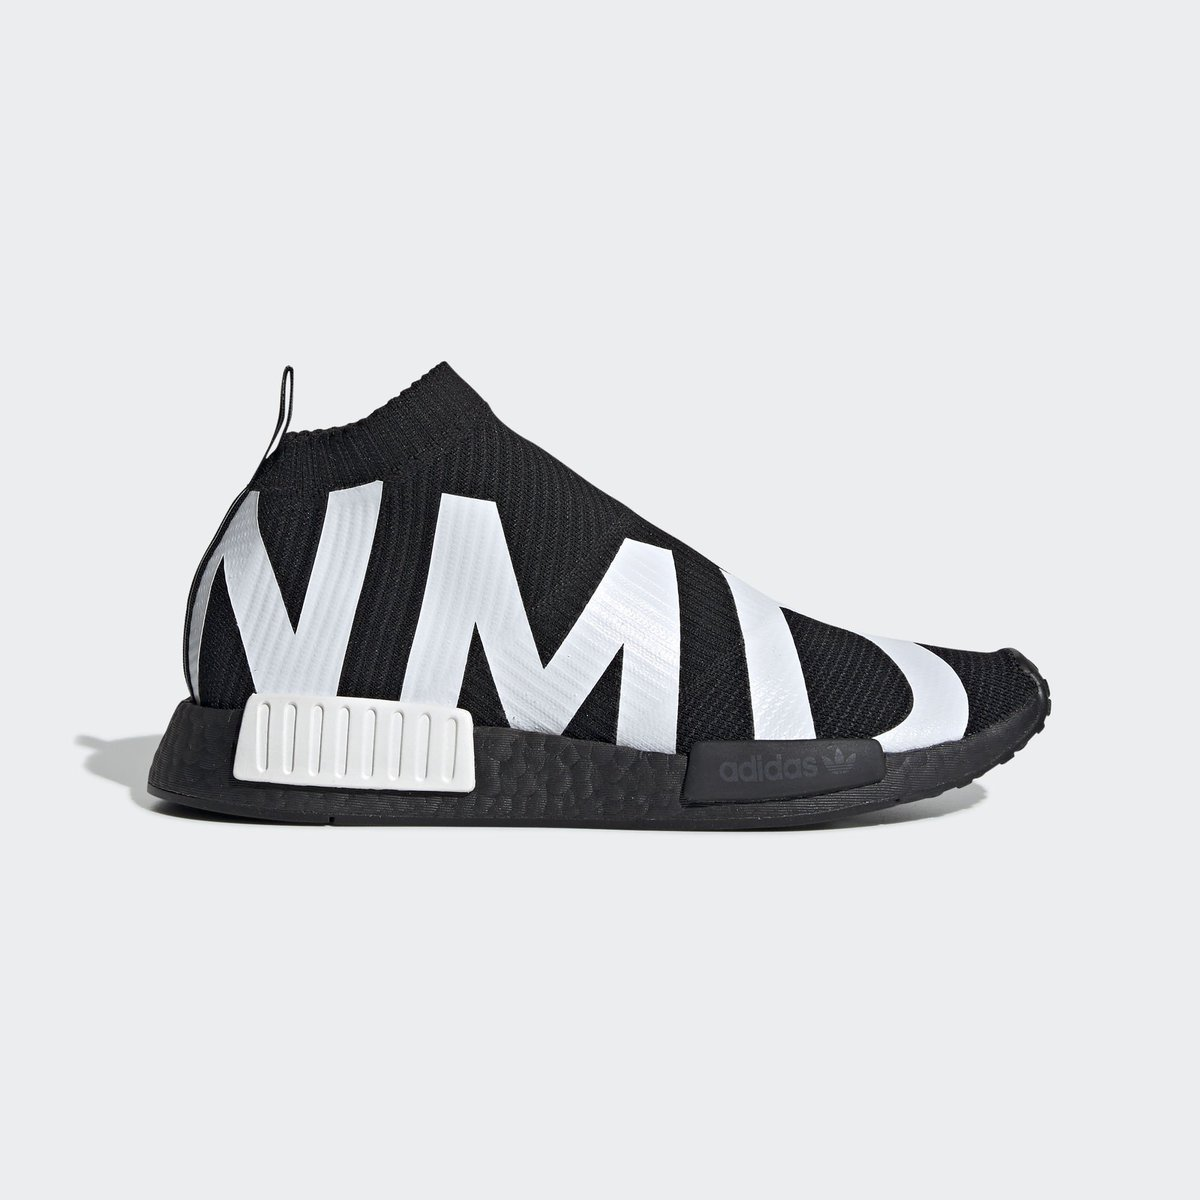 12e2f8020ad5 Coming soon on  adidas US. adidas NMD CS1 Primeknit. Releasing Saturday